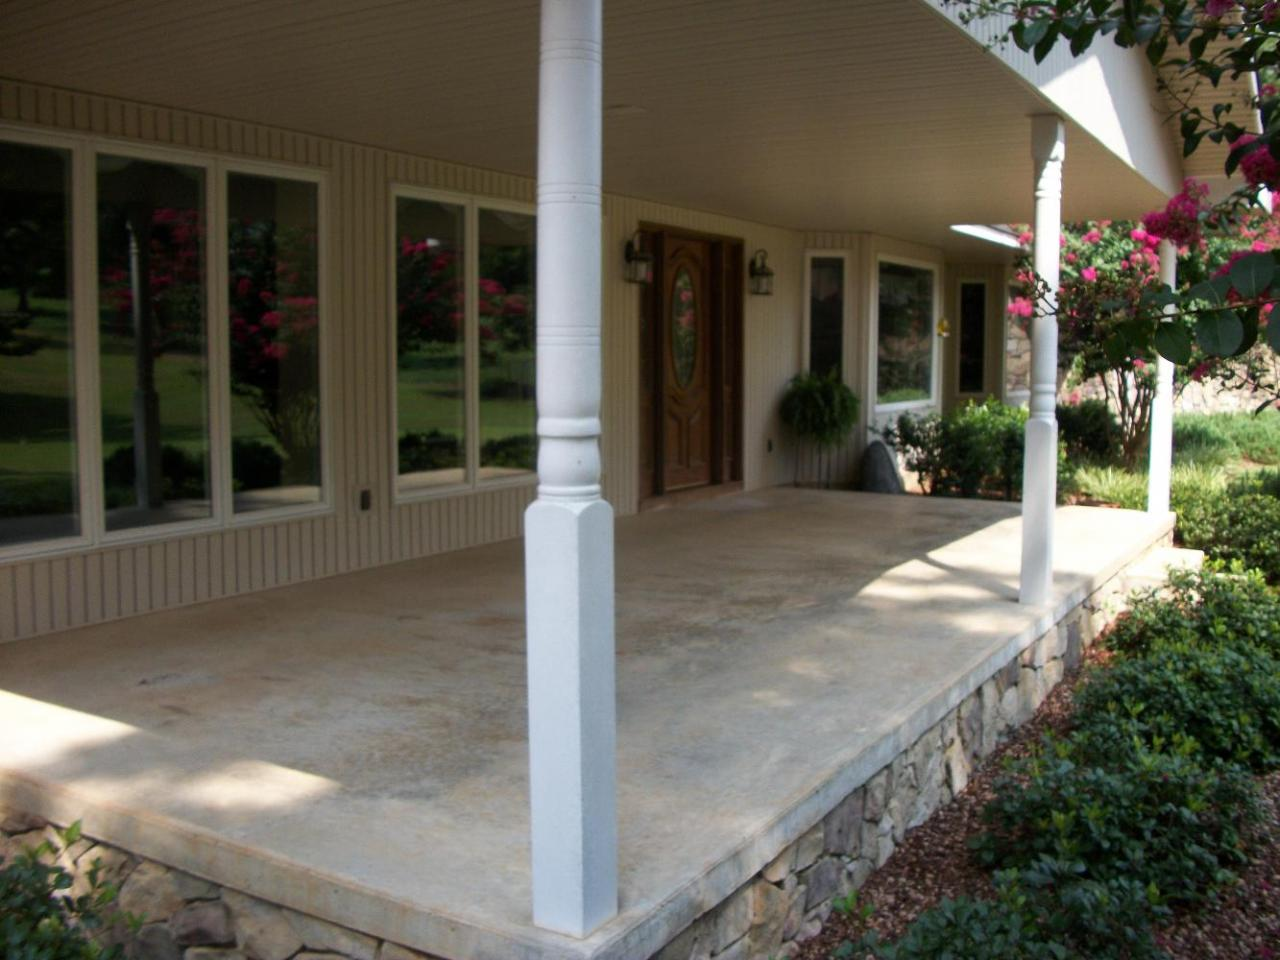 Southern concrete designs llc photo gallery 2 for Brick porch designs for houses